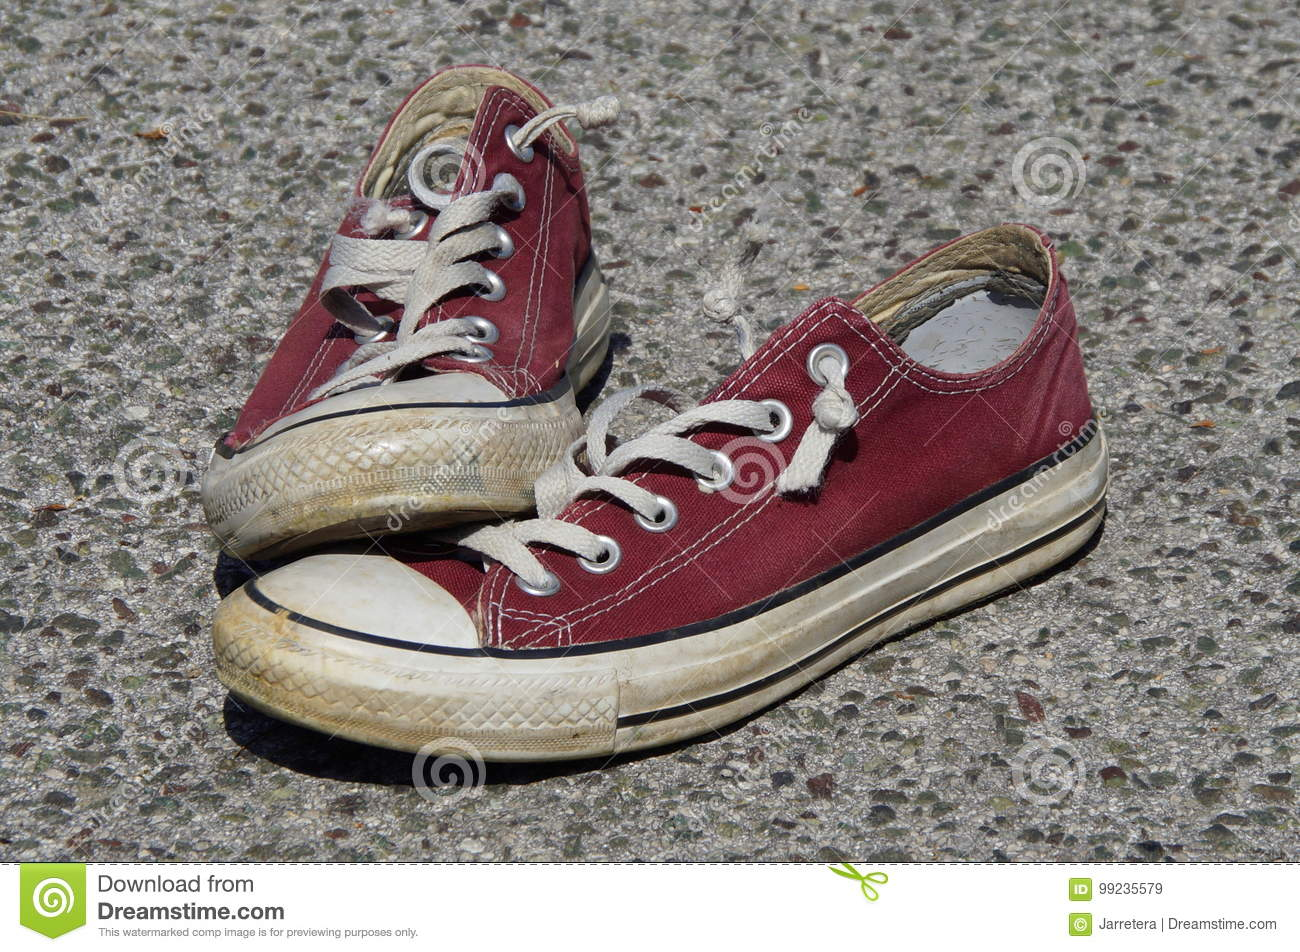 f2152bc7878d9 Vintage canvas shoes stock image. Image of torn, shoes - 99235579